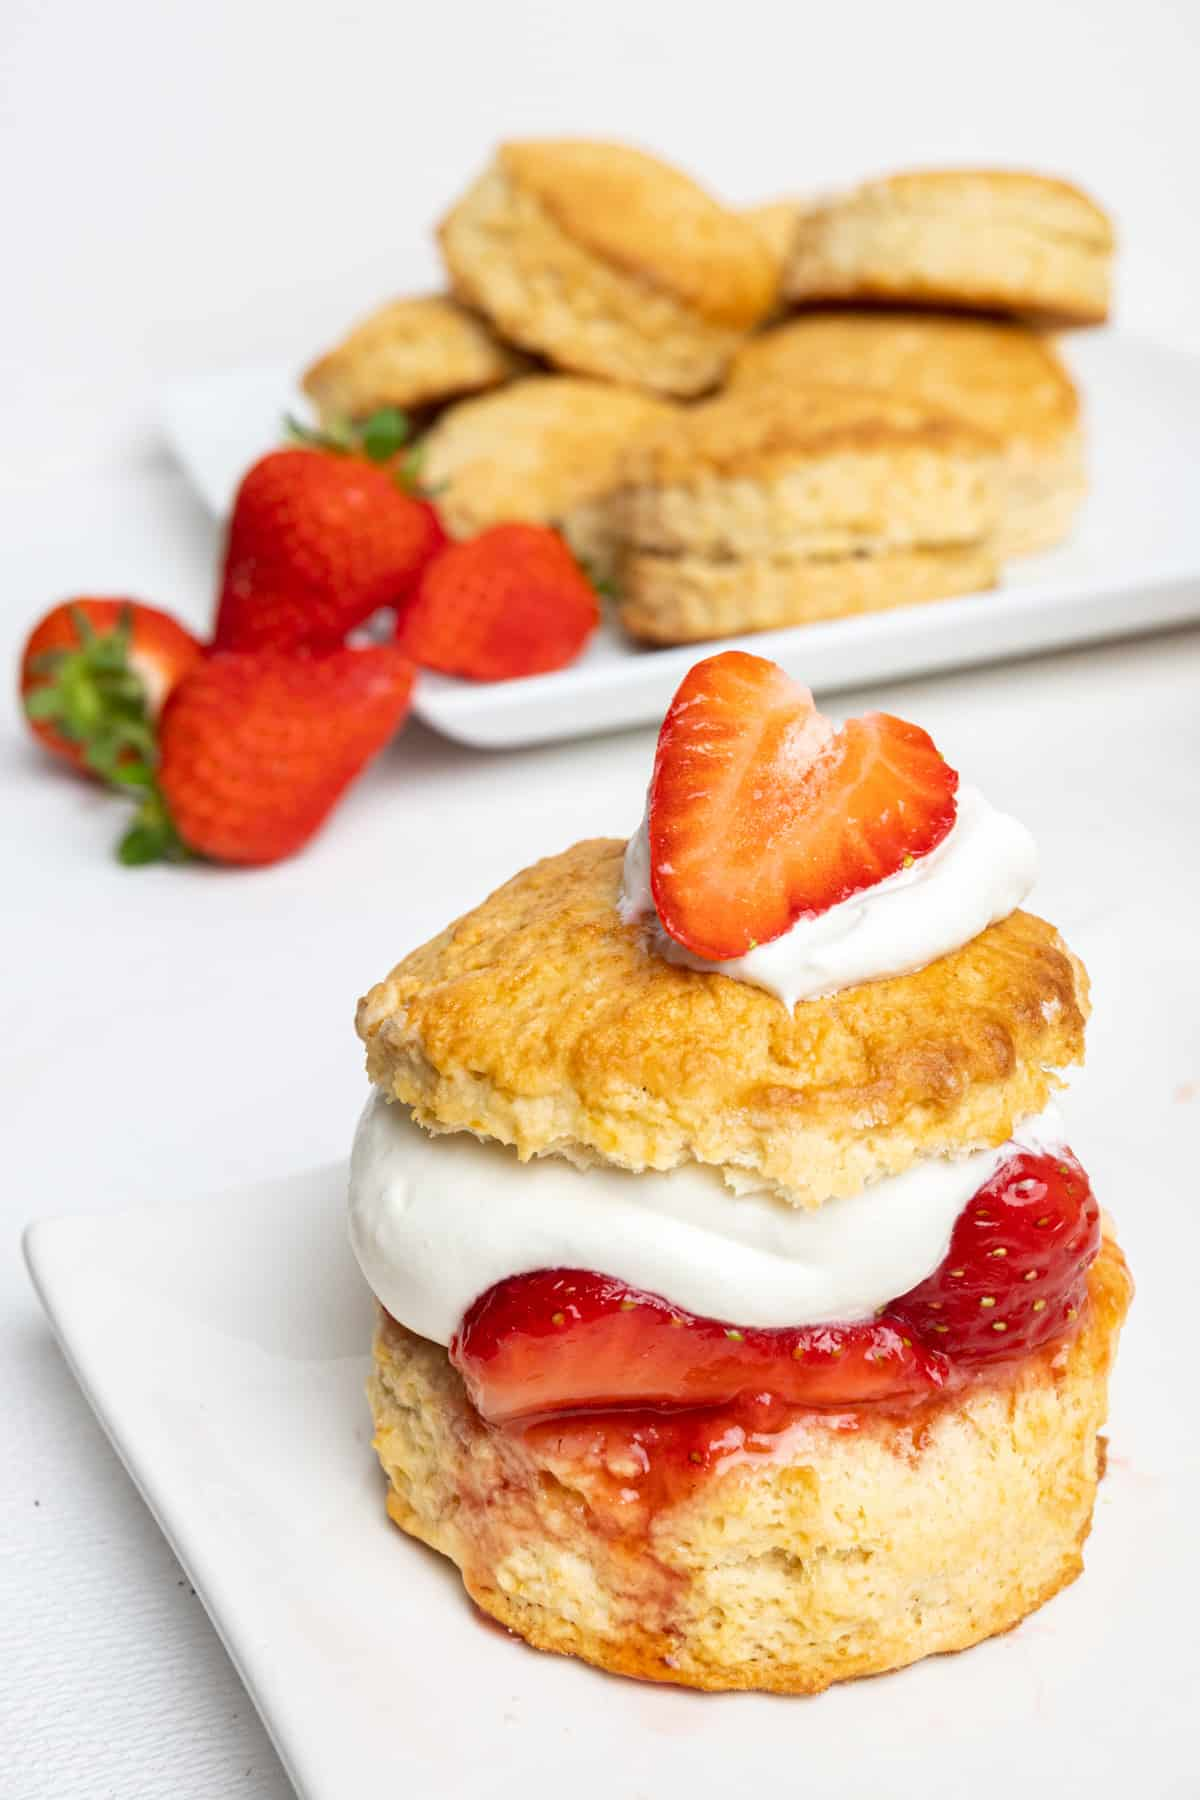 A golden baked biscuit filled with strawberries and whipped cream. The juice from the fruit is running down the side of the biscuit base.